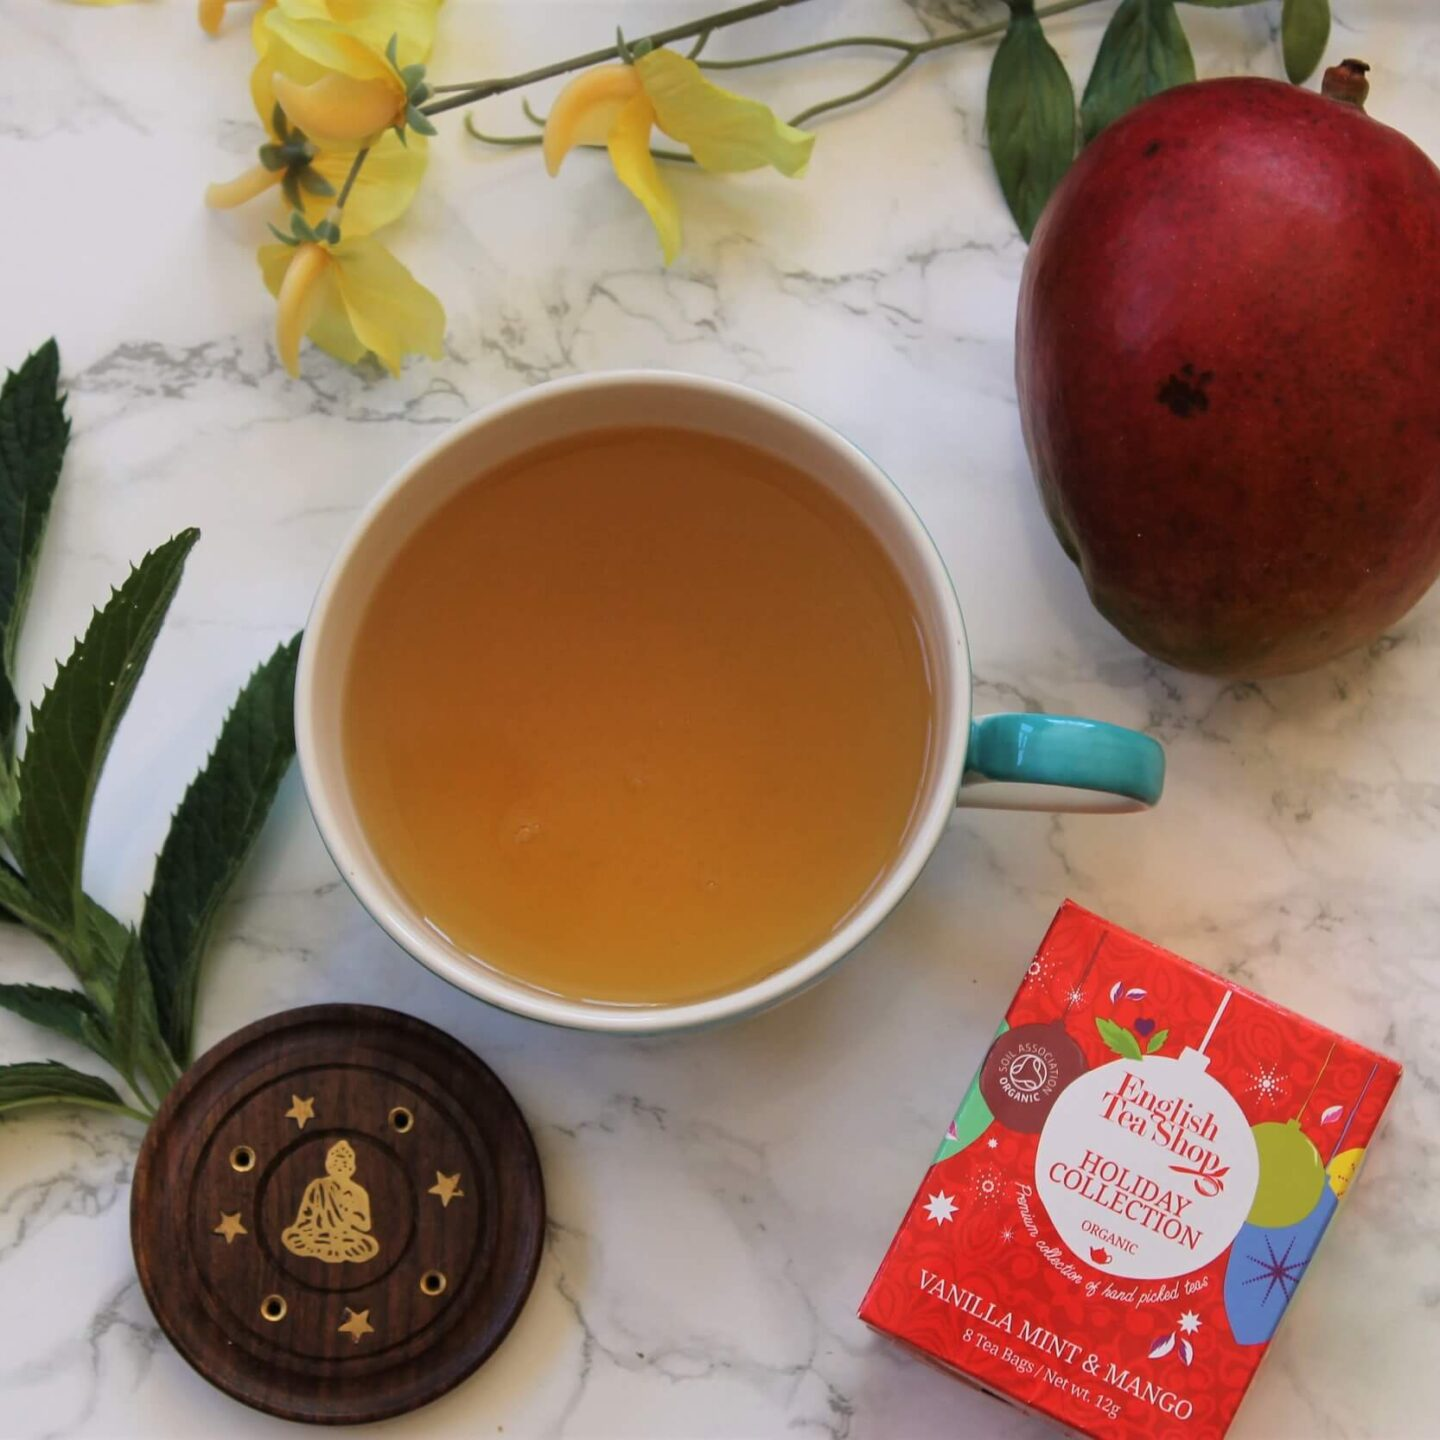 English Tea Shop Vanilla, Mint and Mango Tea Review